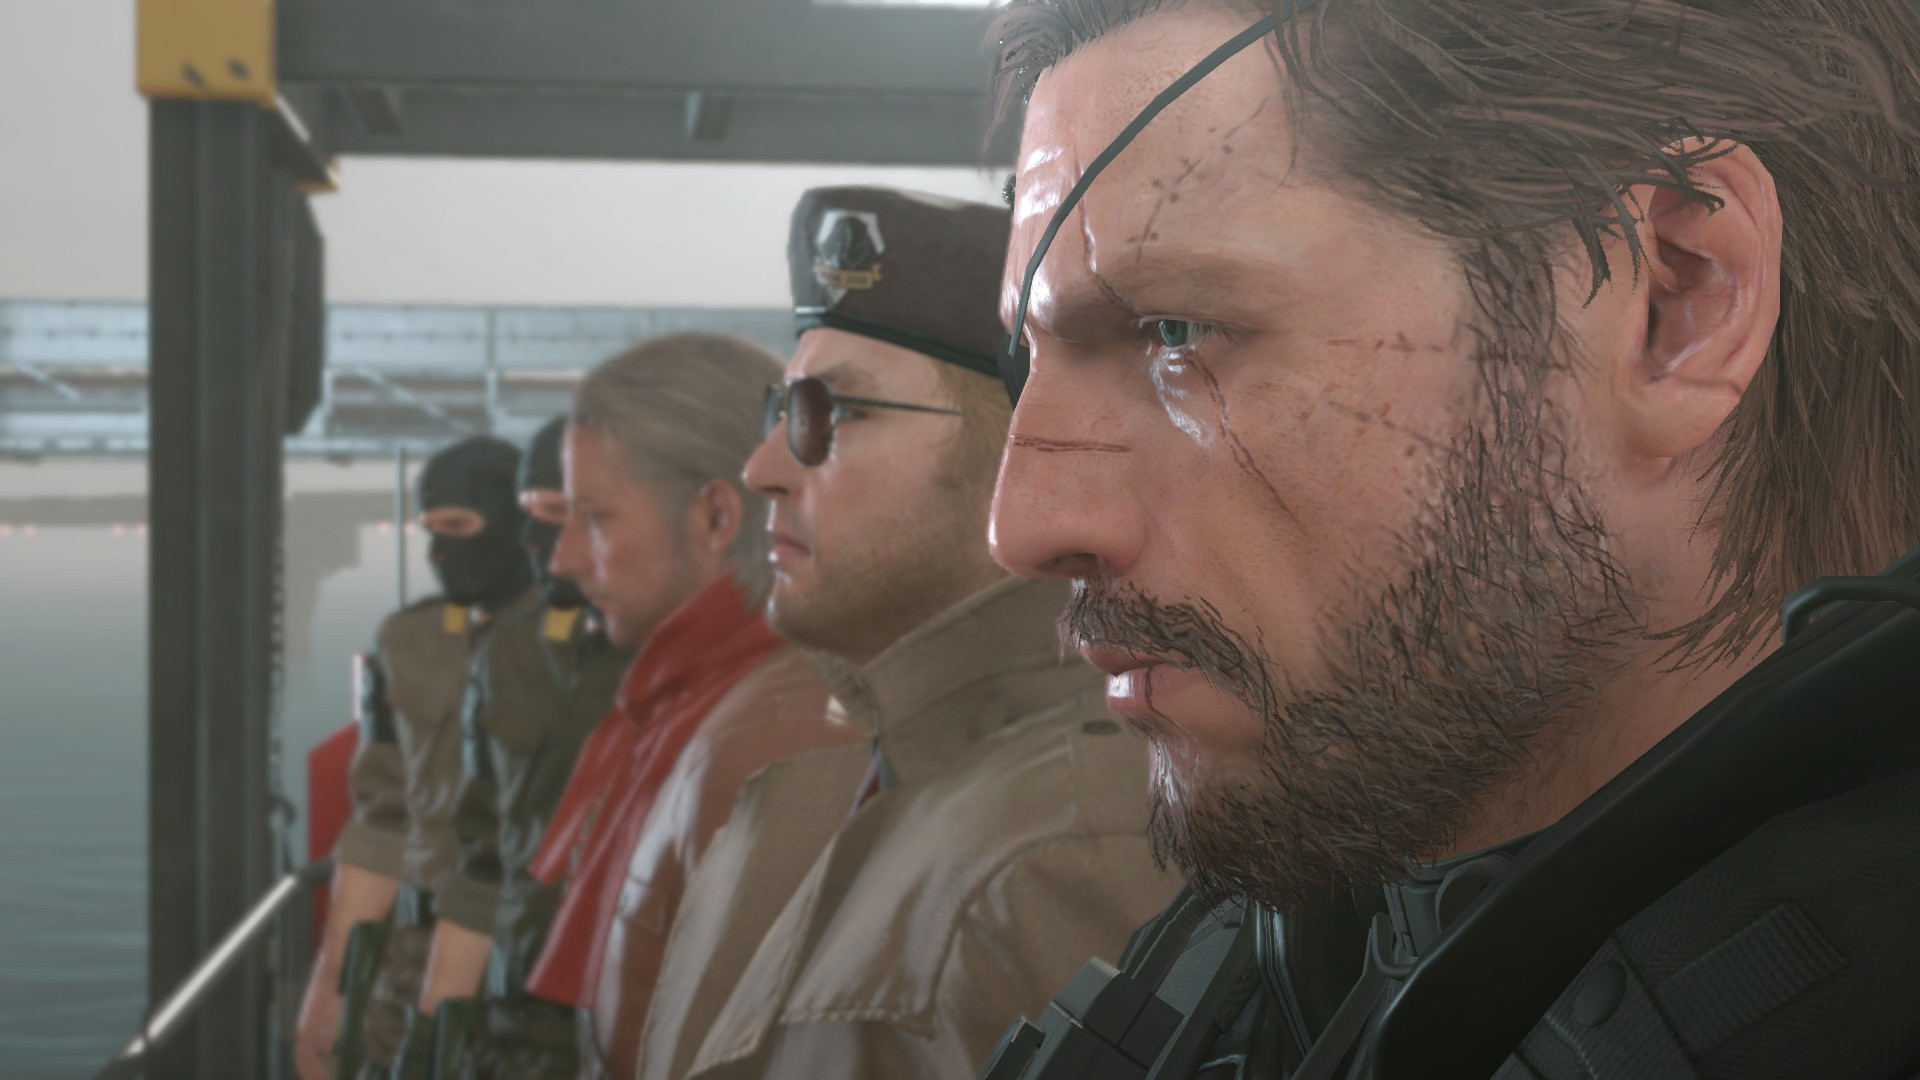 Snake, Kaz Miller, and Ocelot standing with others.